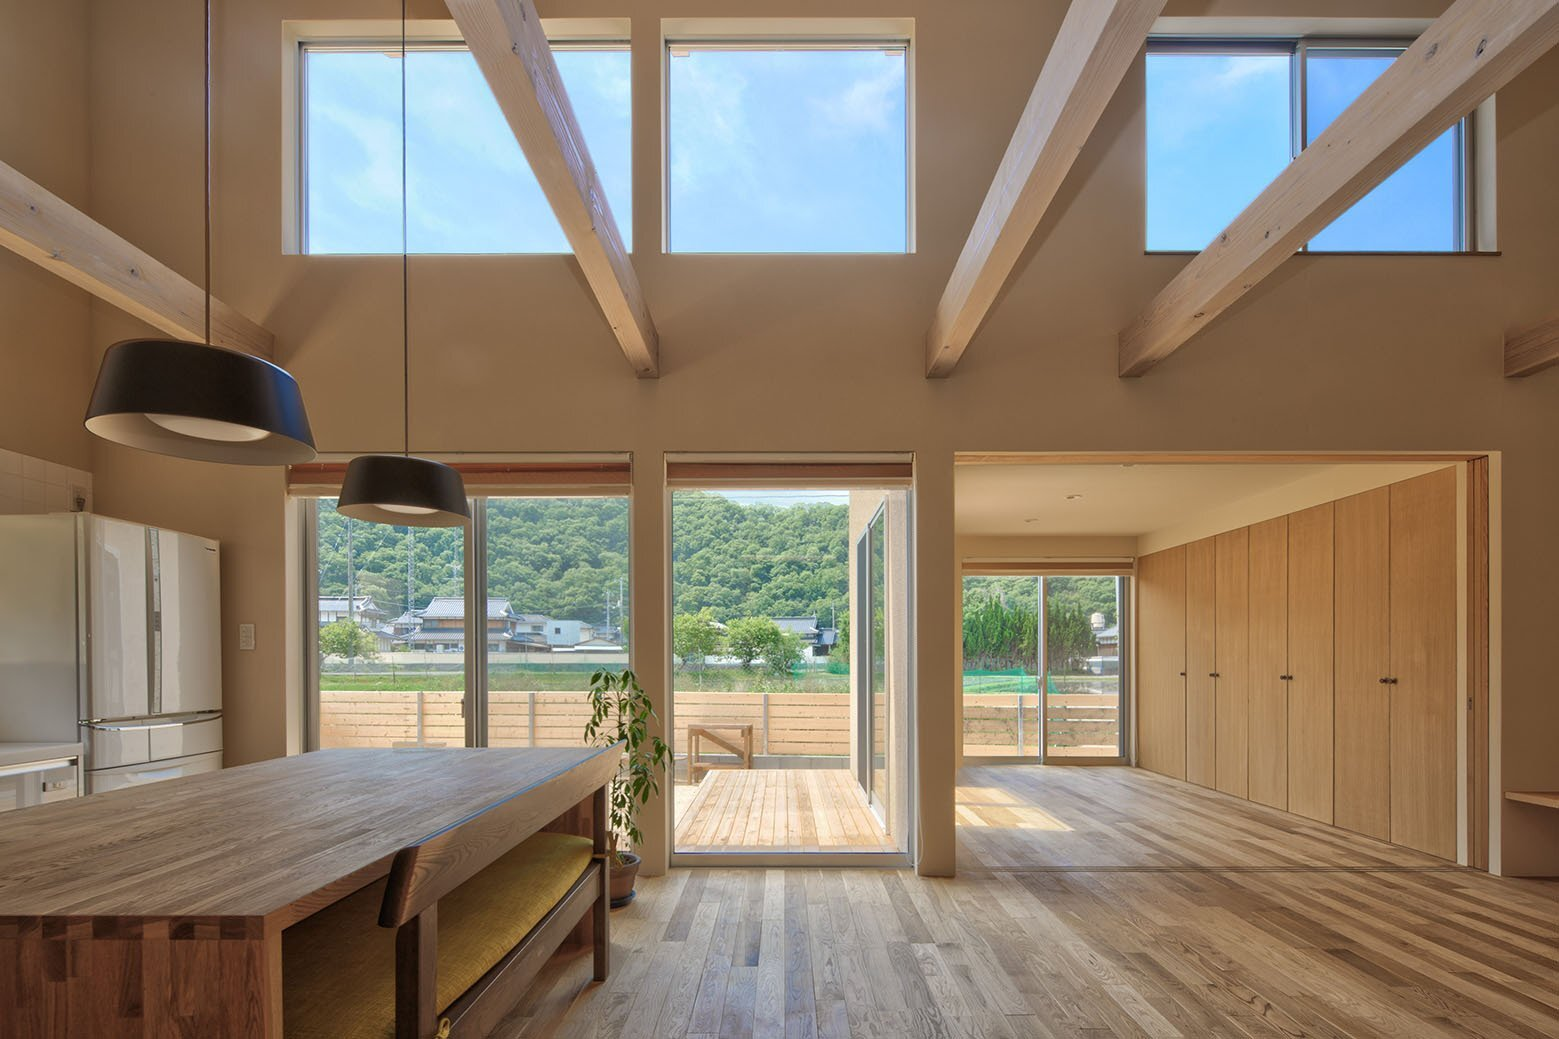 House in Yoshinaga - Tomoyuki Uchida - Japan - Living Areas - Humble Homes